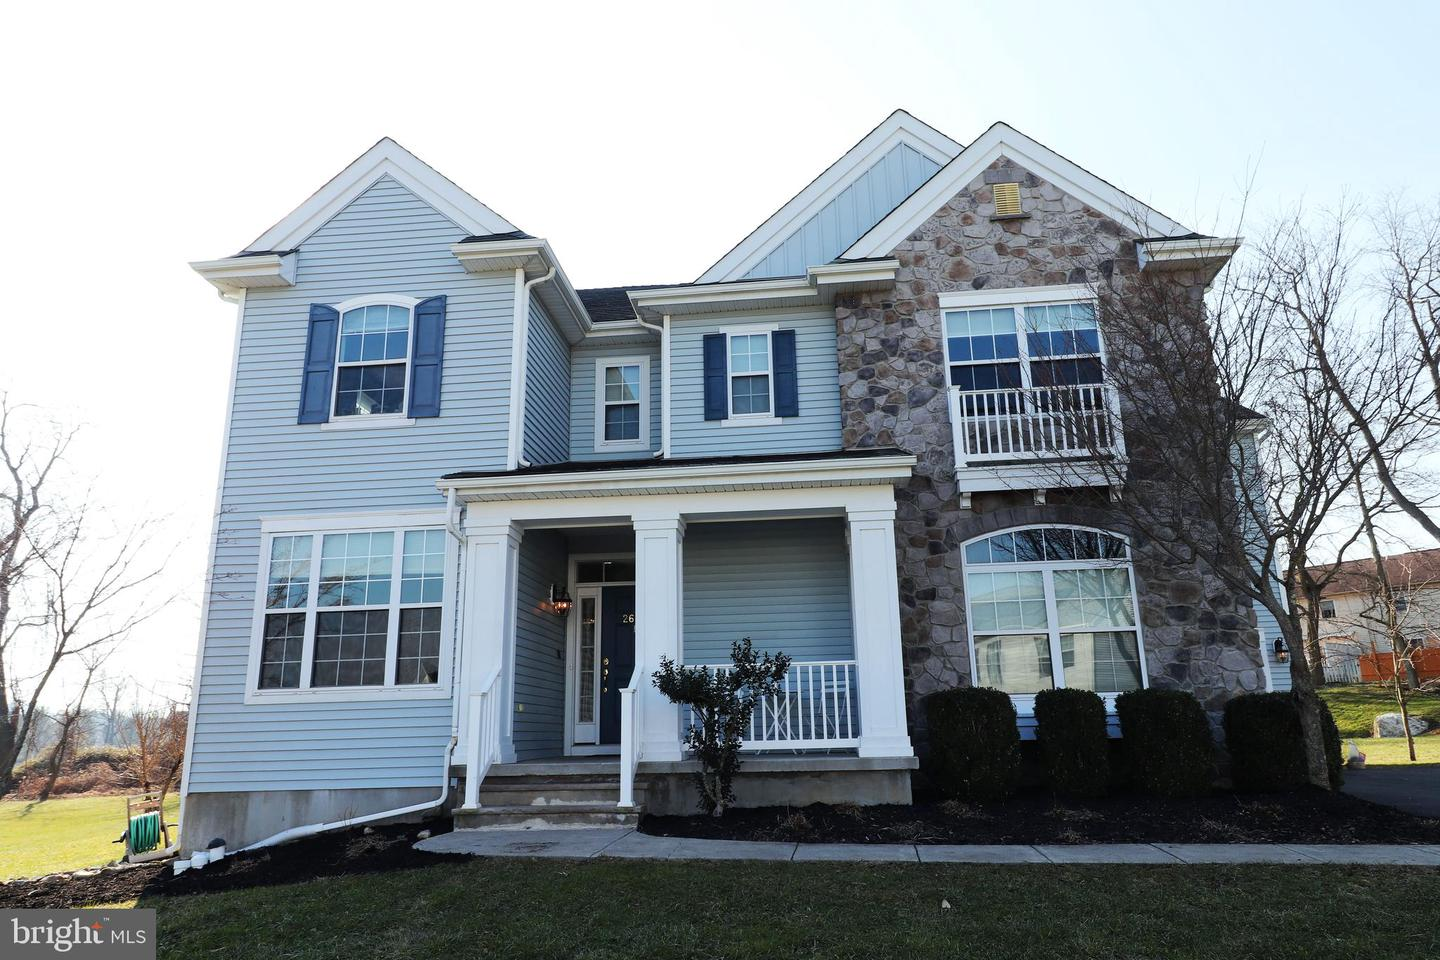 2698 HOMESTEAD DR, EASTON, Pennsylvania 18040, 7 Bedrooms Bedrooms, ,4 BathroomsBathrooms,Single Family,For Sale,2698 HOMESTEAD DR,PANH107594